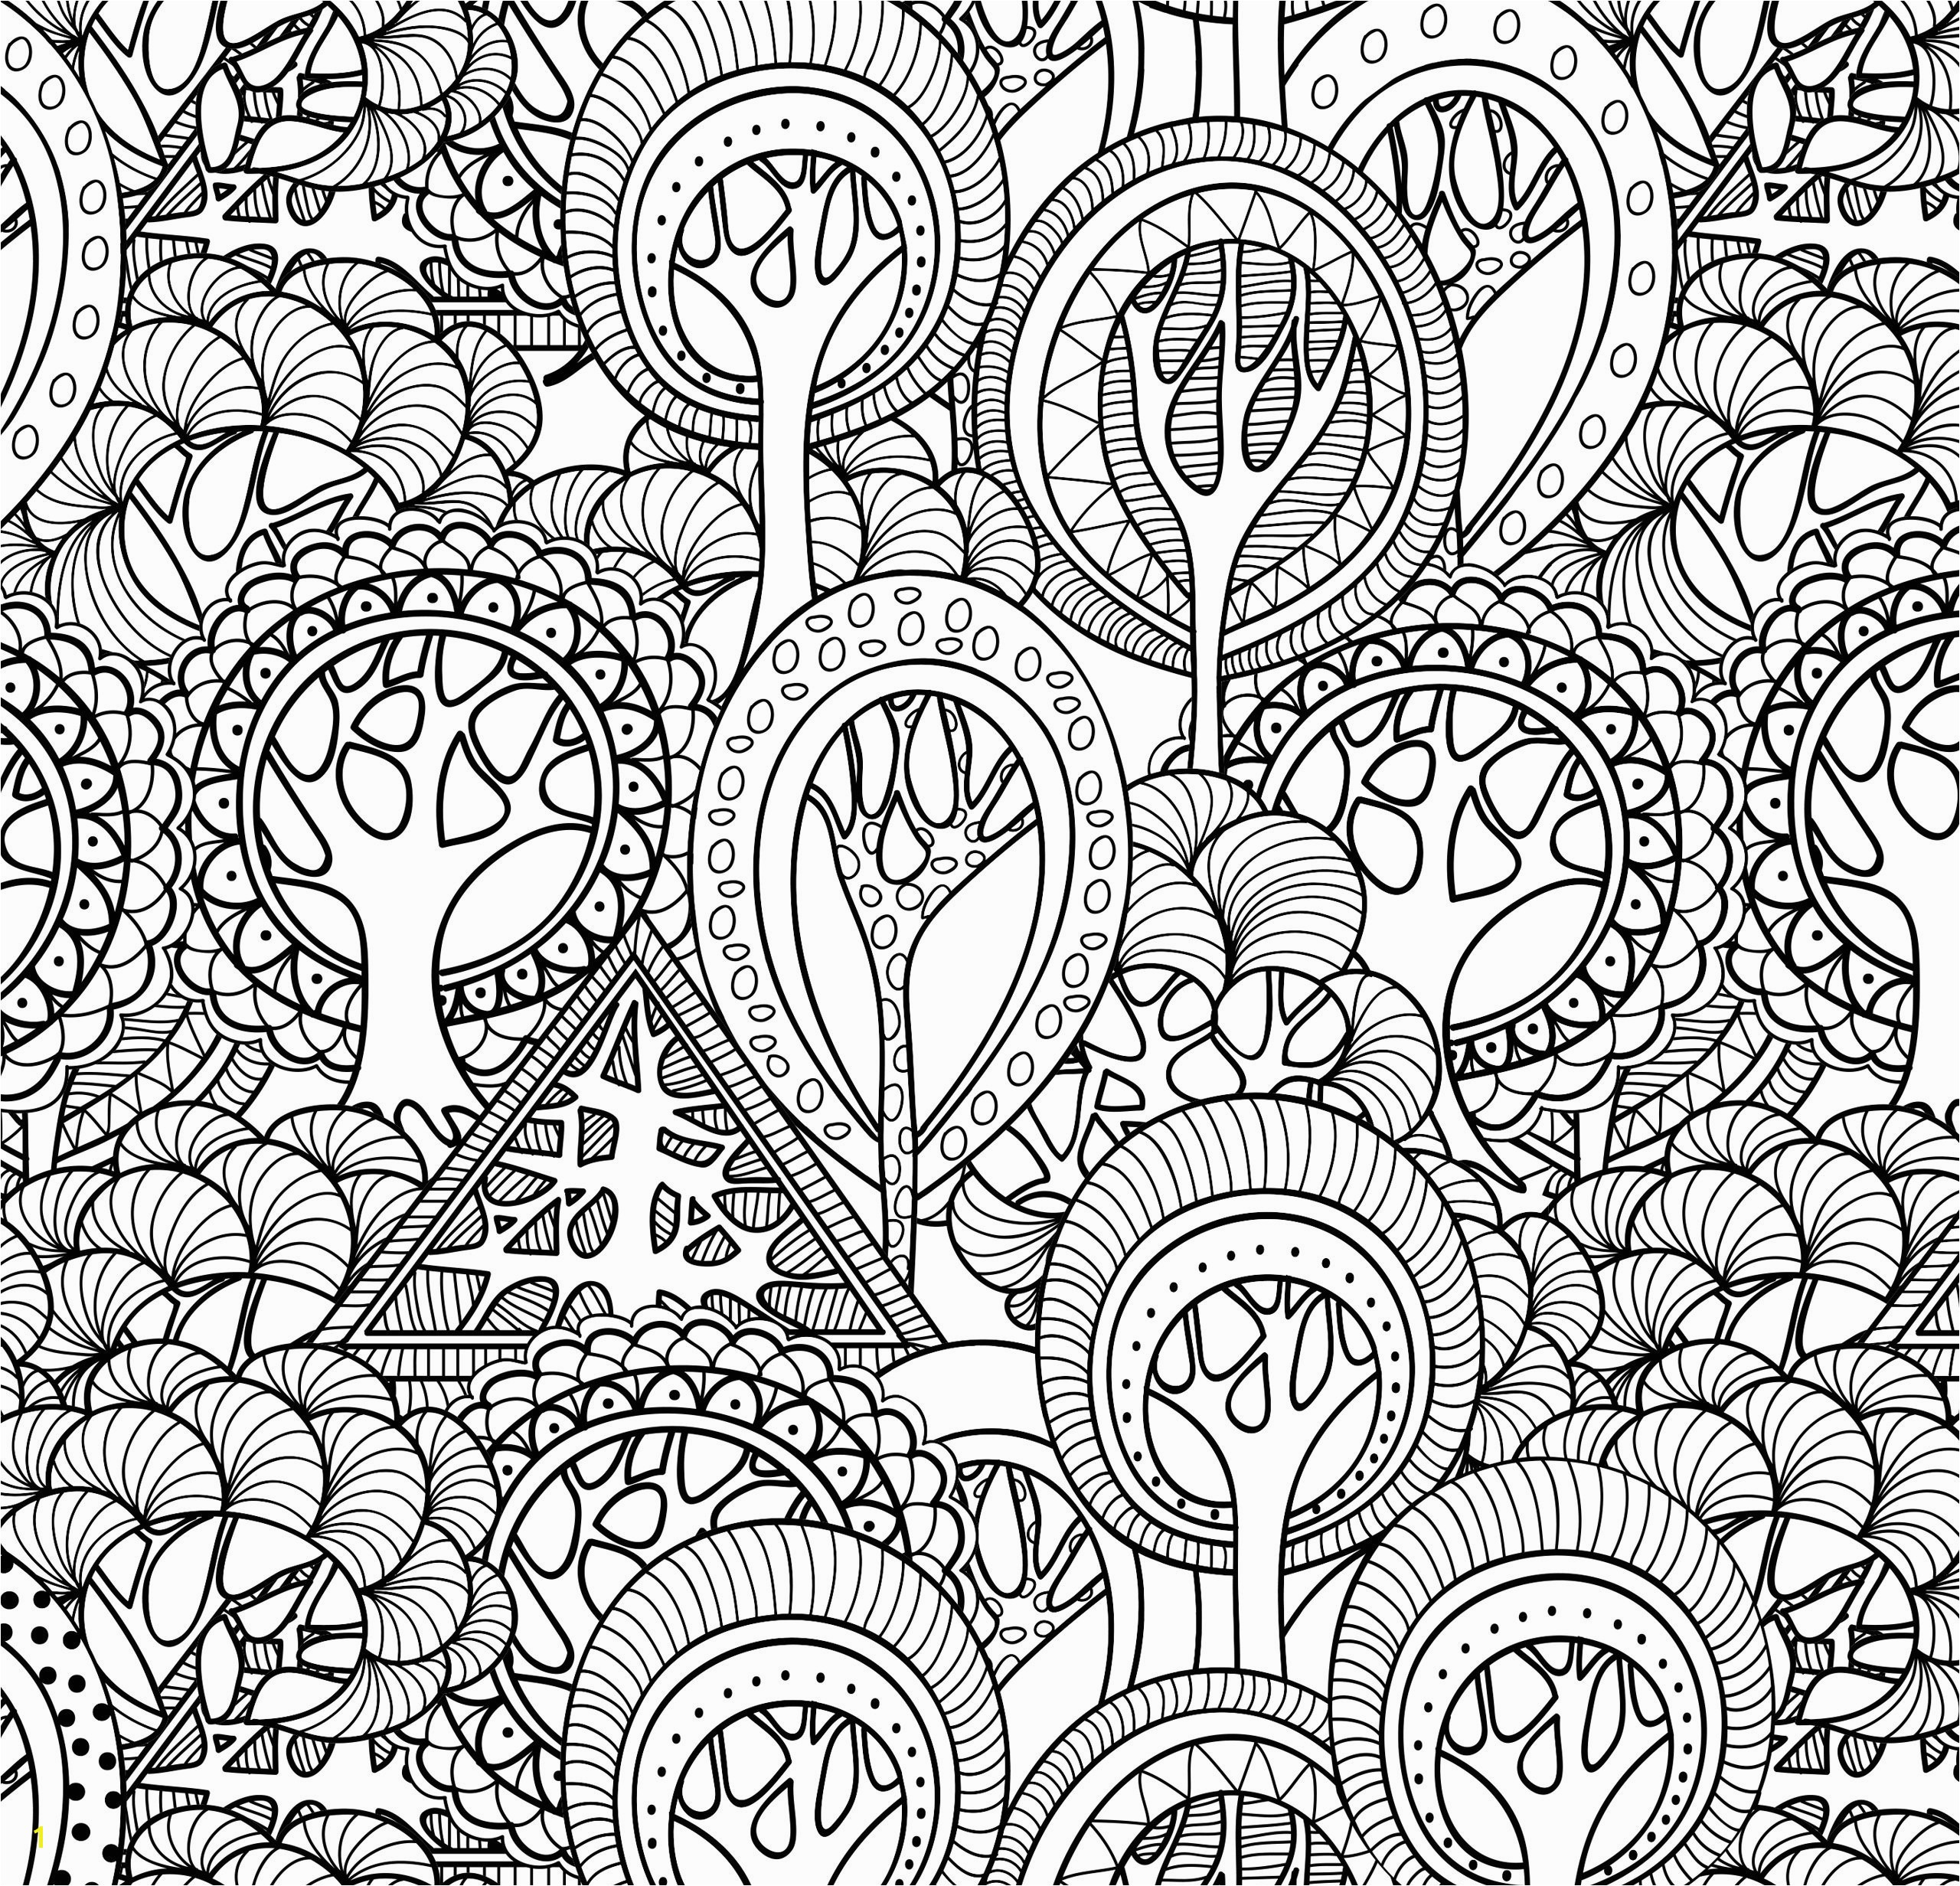 Happy Jack O Lantern Coloring Pages 13 New Happy Jack O Lantern Coloring Pages Graph